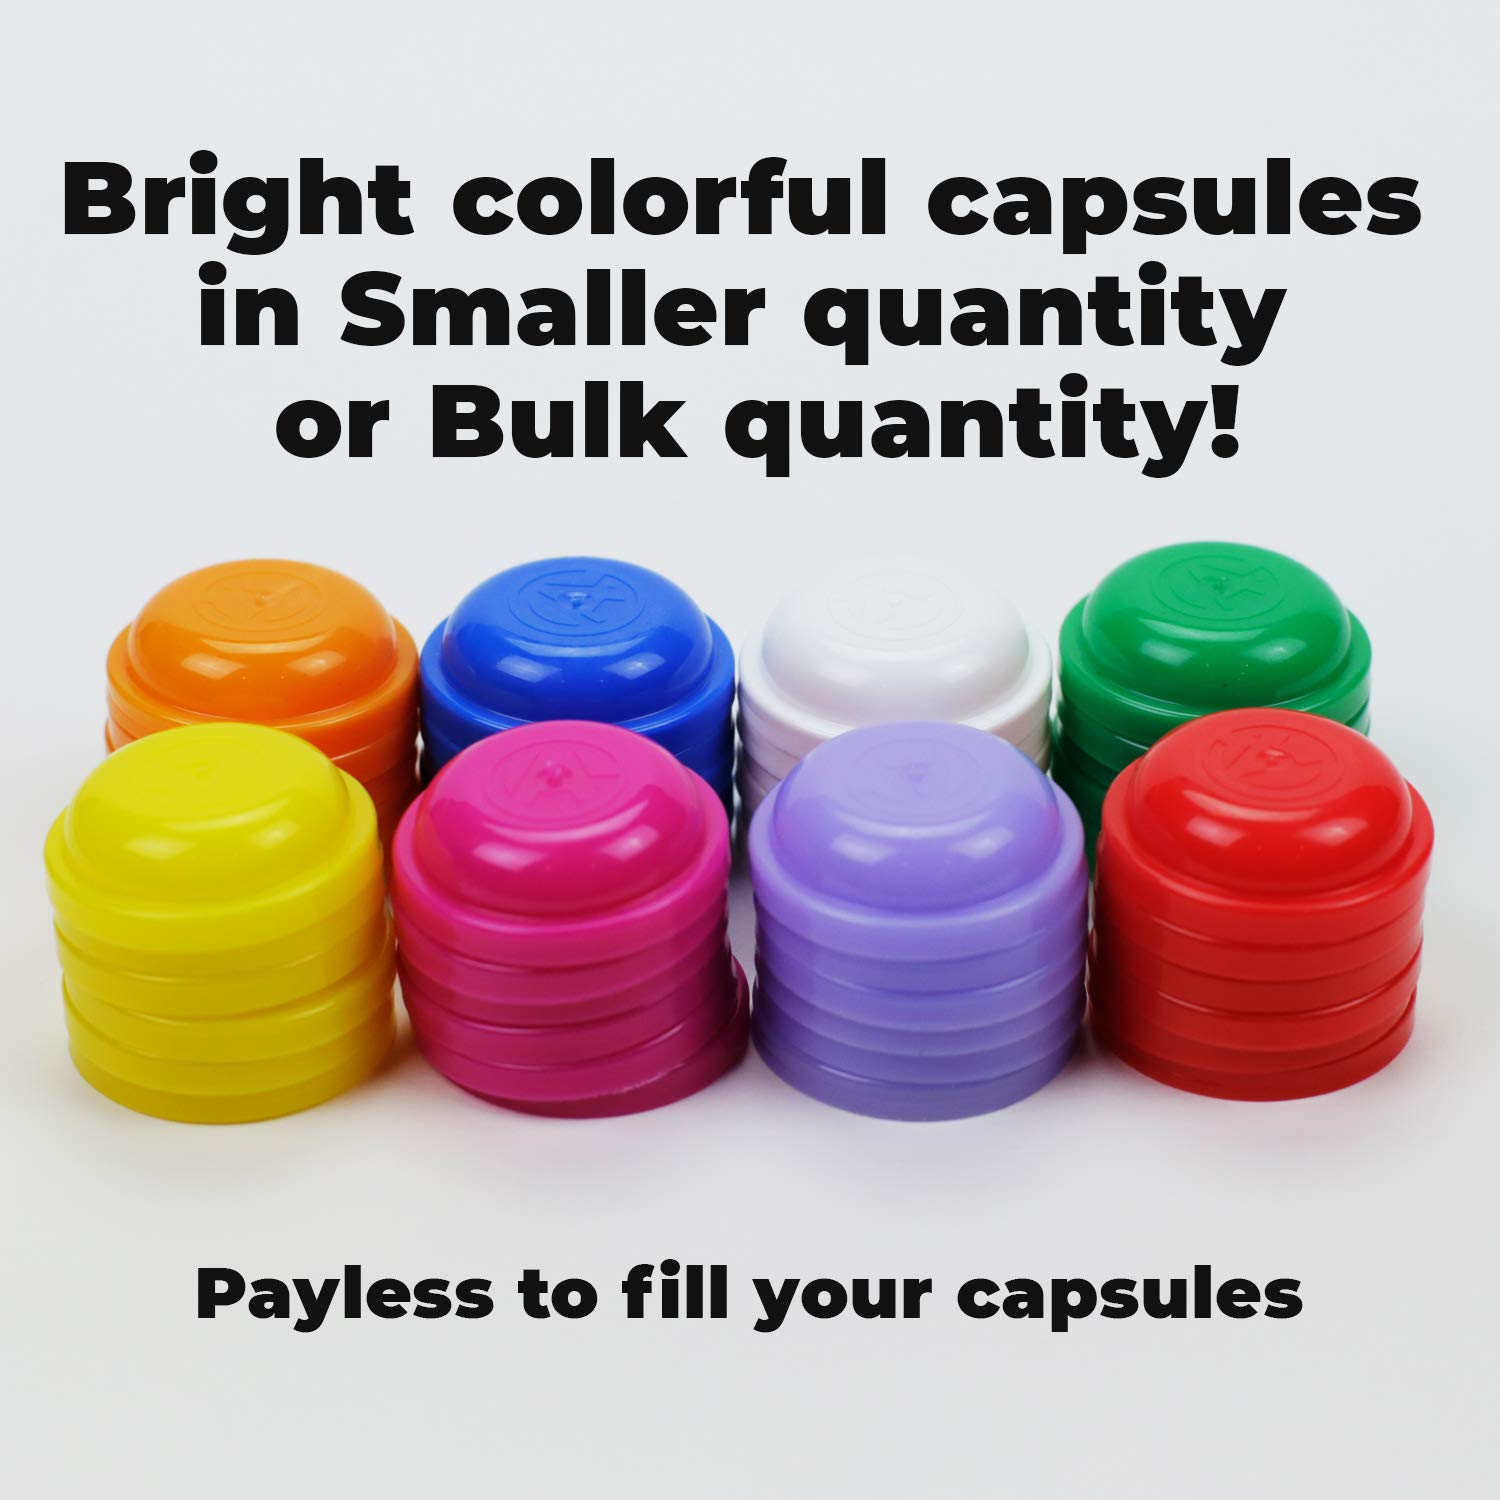 Toy Empty Capsules 1.1'' 2500 pcs Bulk 8 COLORS Acorn Capsule for Toy Gumball Machines Small Clear Containers Surprise for Kids Party Favor Prize Colorful Plastic Container Storage for Toys by Entervending (Image #4)